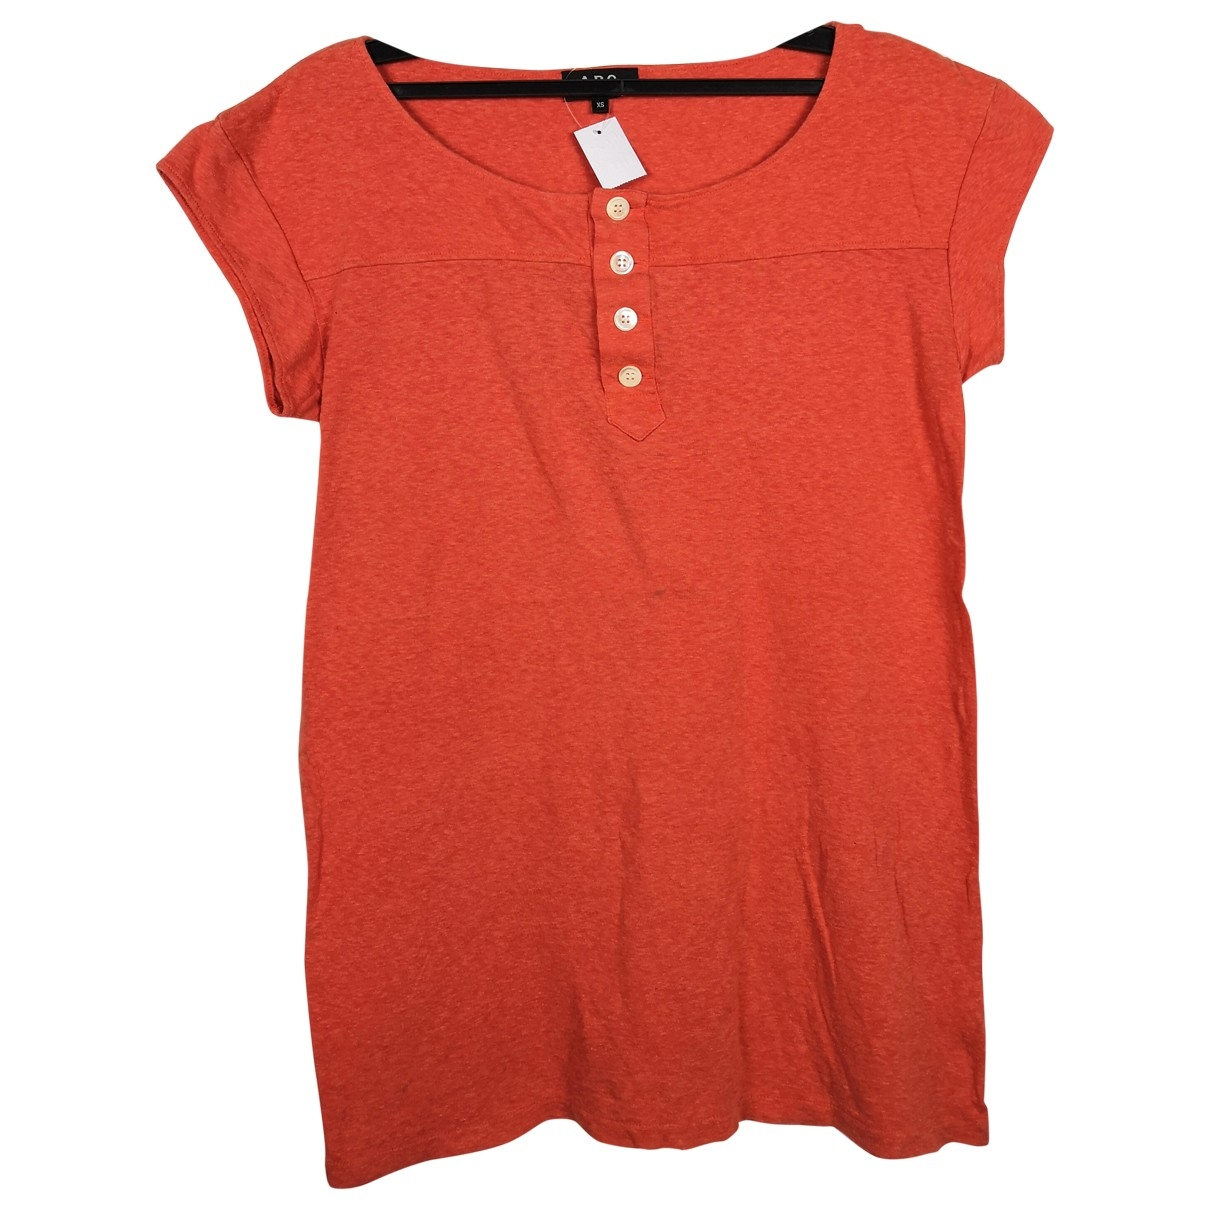 Apc \N Cotton  top for Women M International